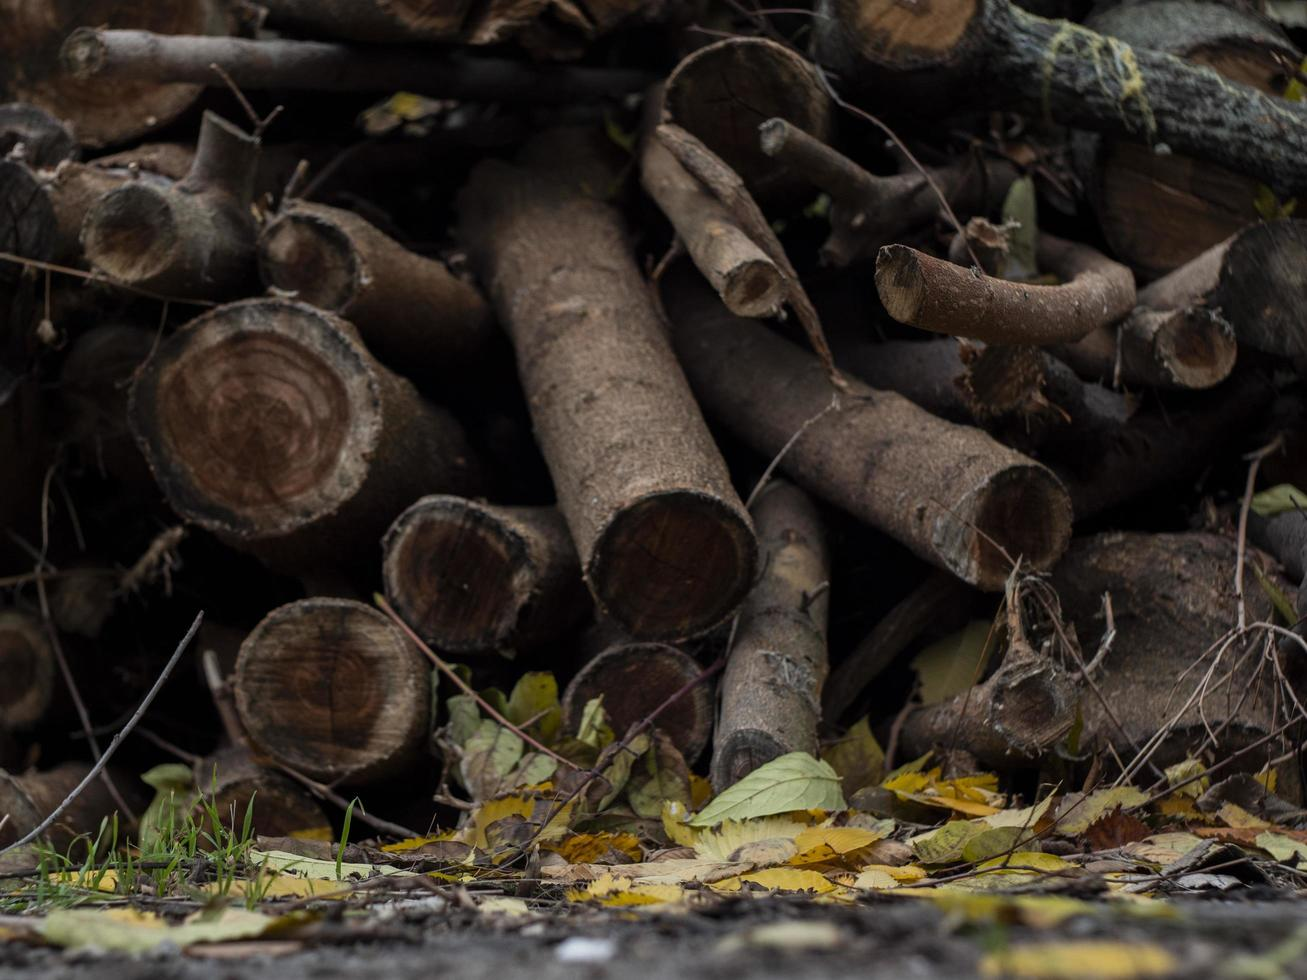 Dry firewood on a background of autumn foliage photo